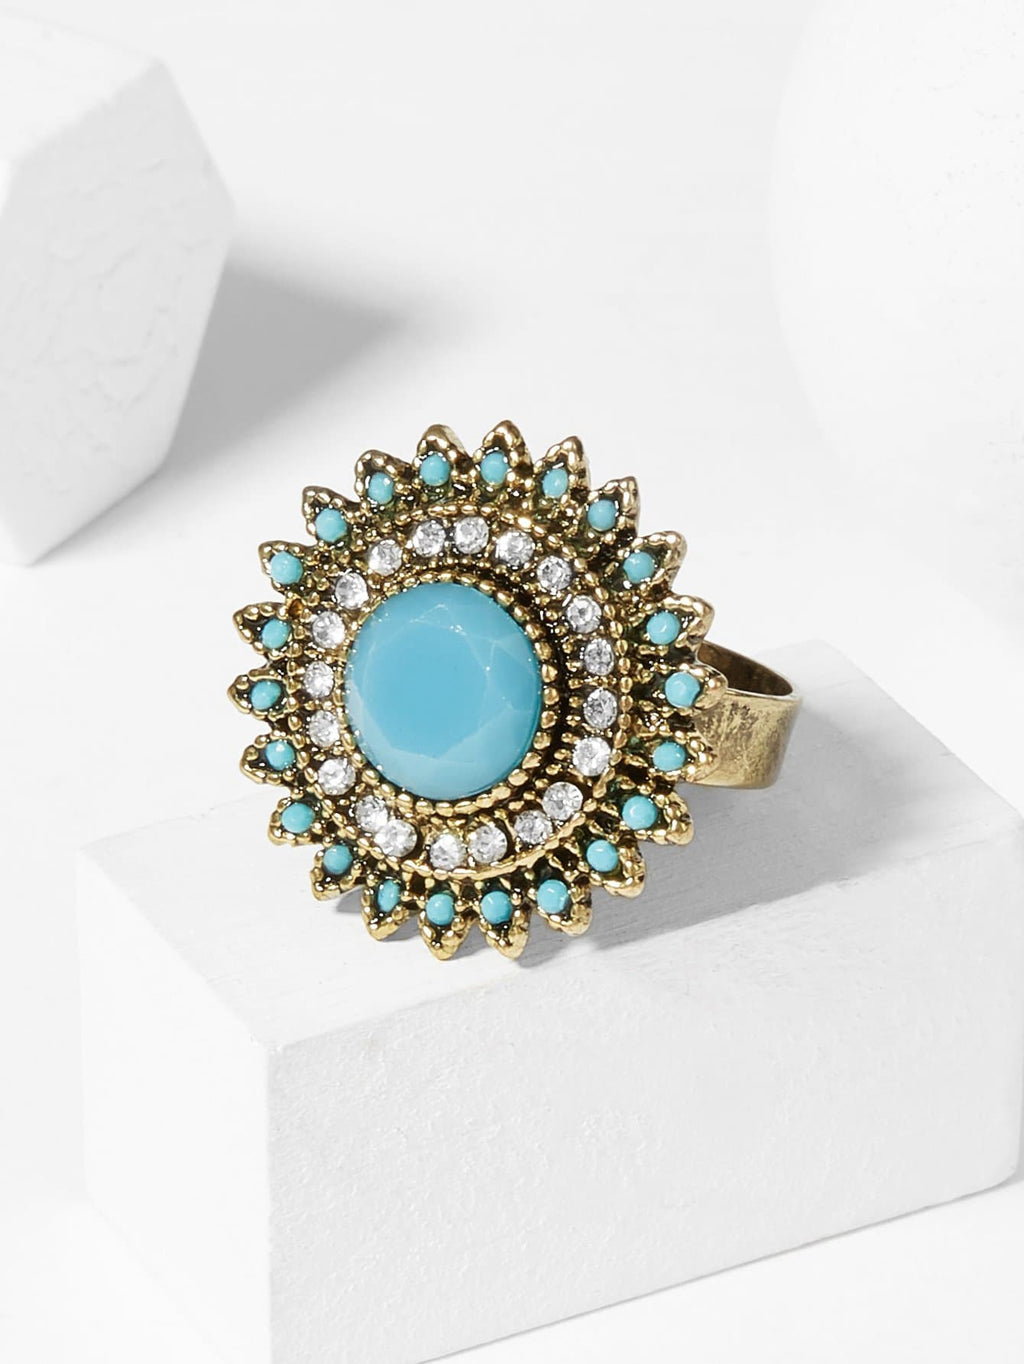 Fashion Rings - Contrast Round Gemstone Ring